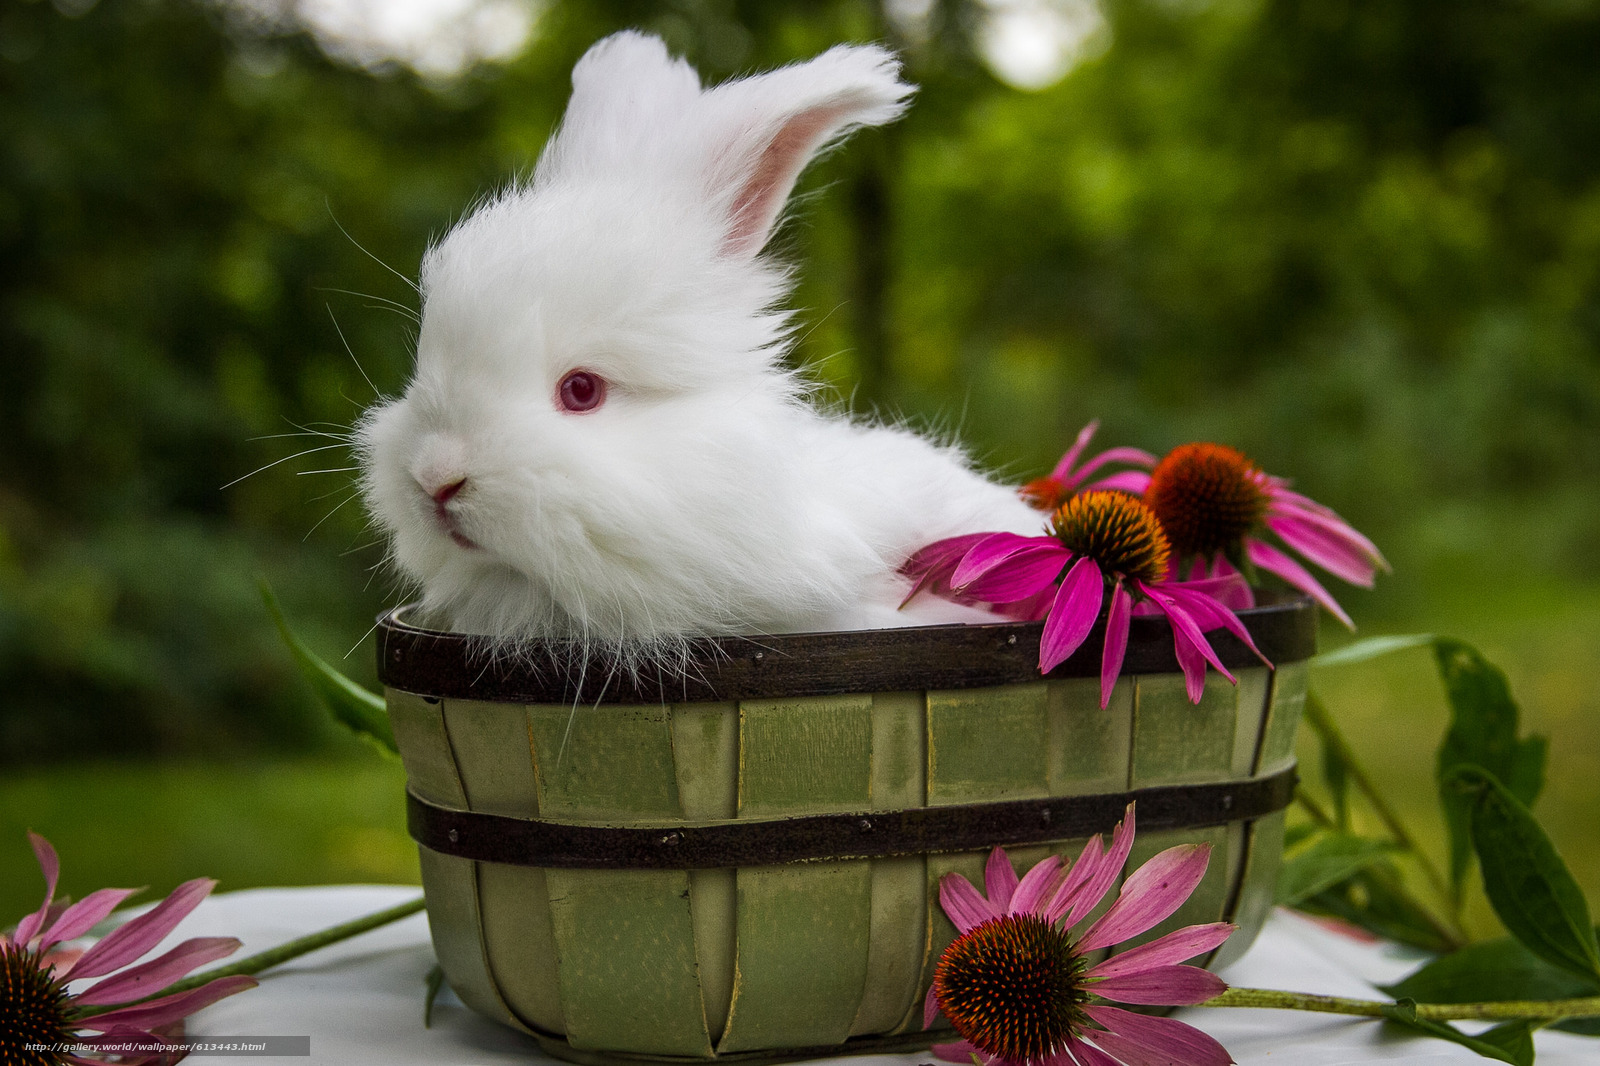 Download Wallpaper White Rabbit Flowers Free Desktop In The Resolution 2048x1365 Picture No613443